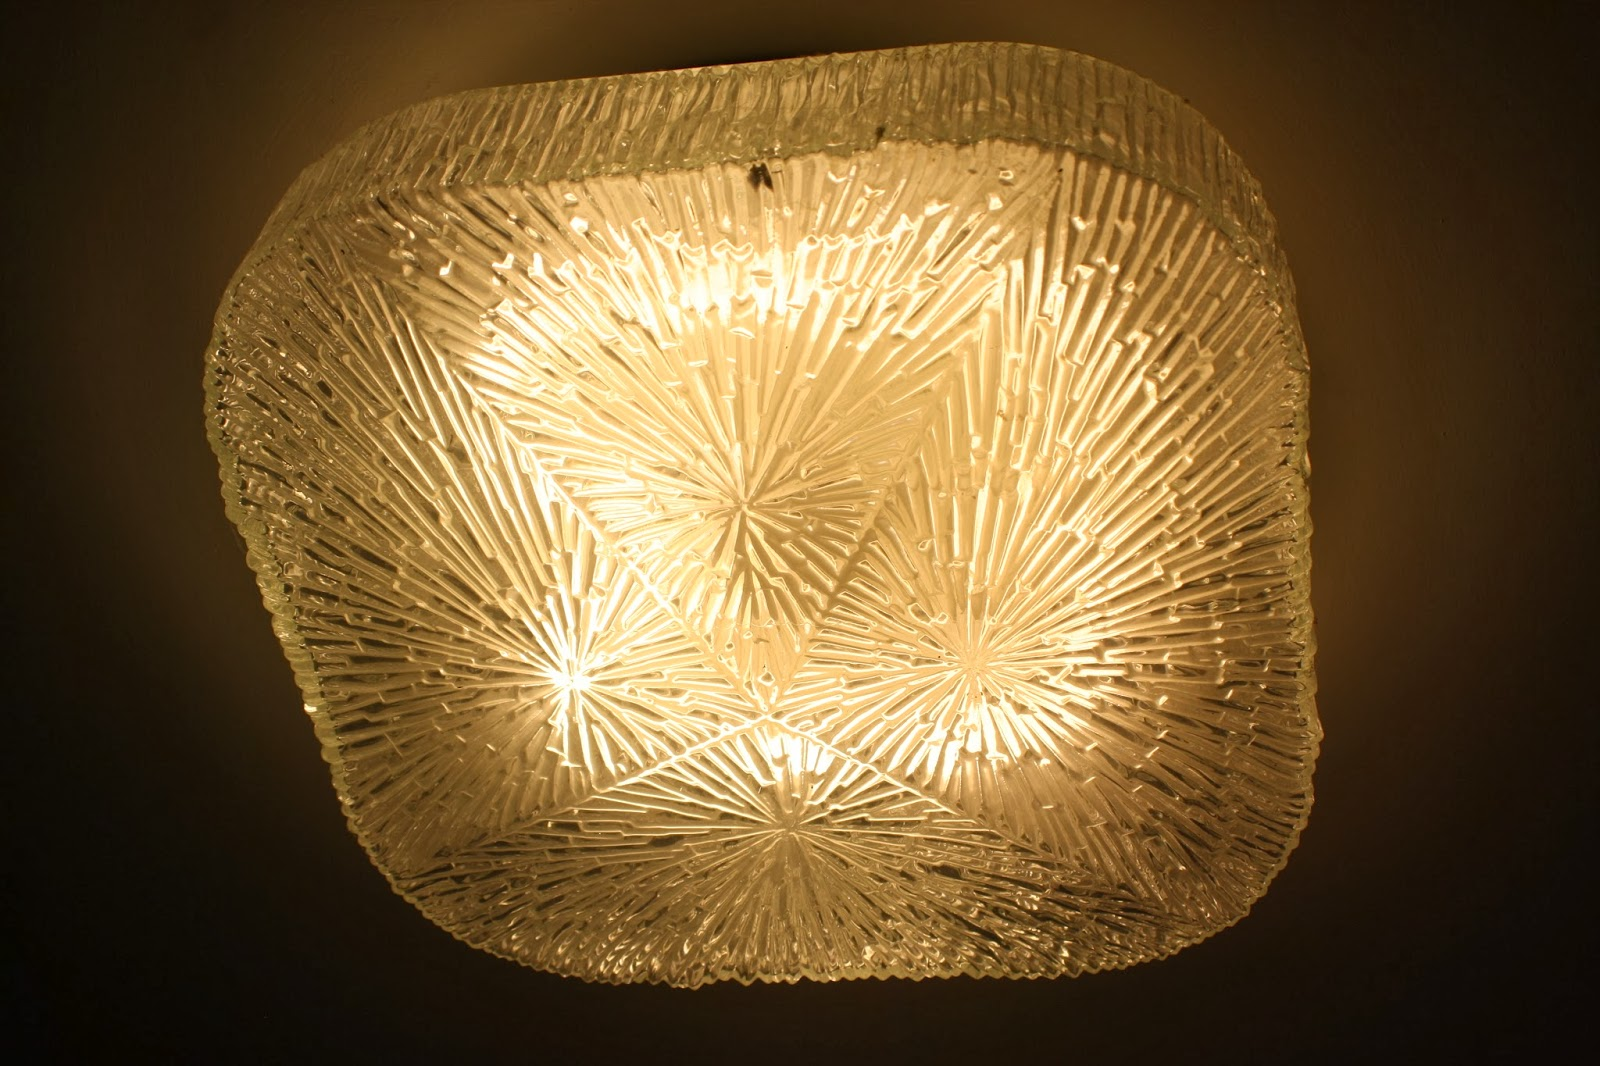 New-house-old-lights-365